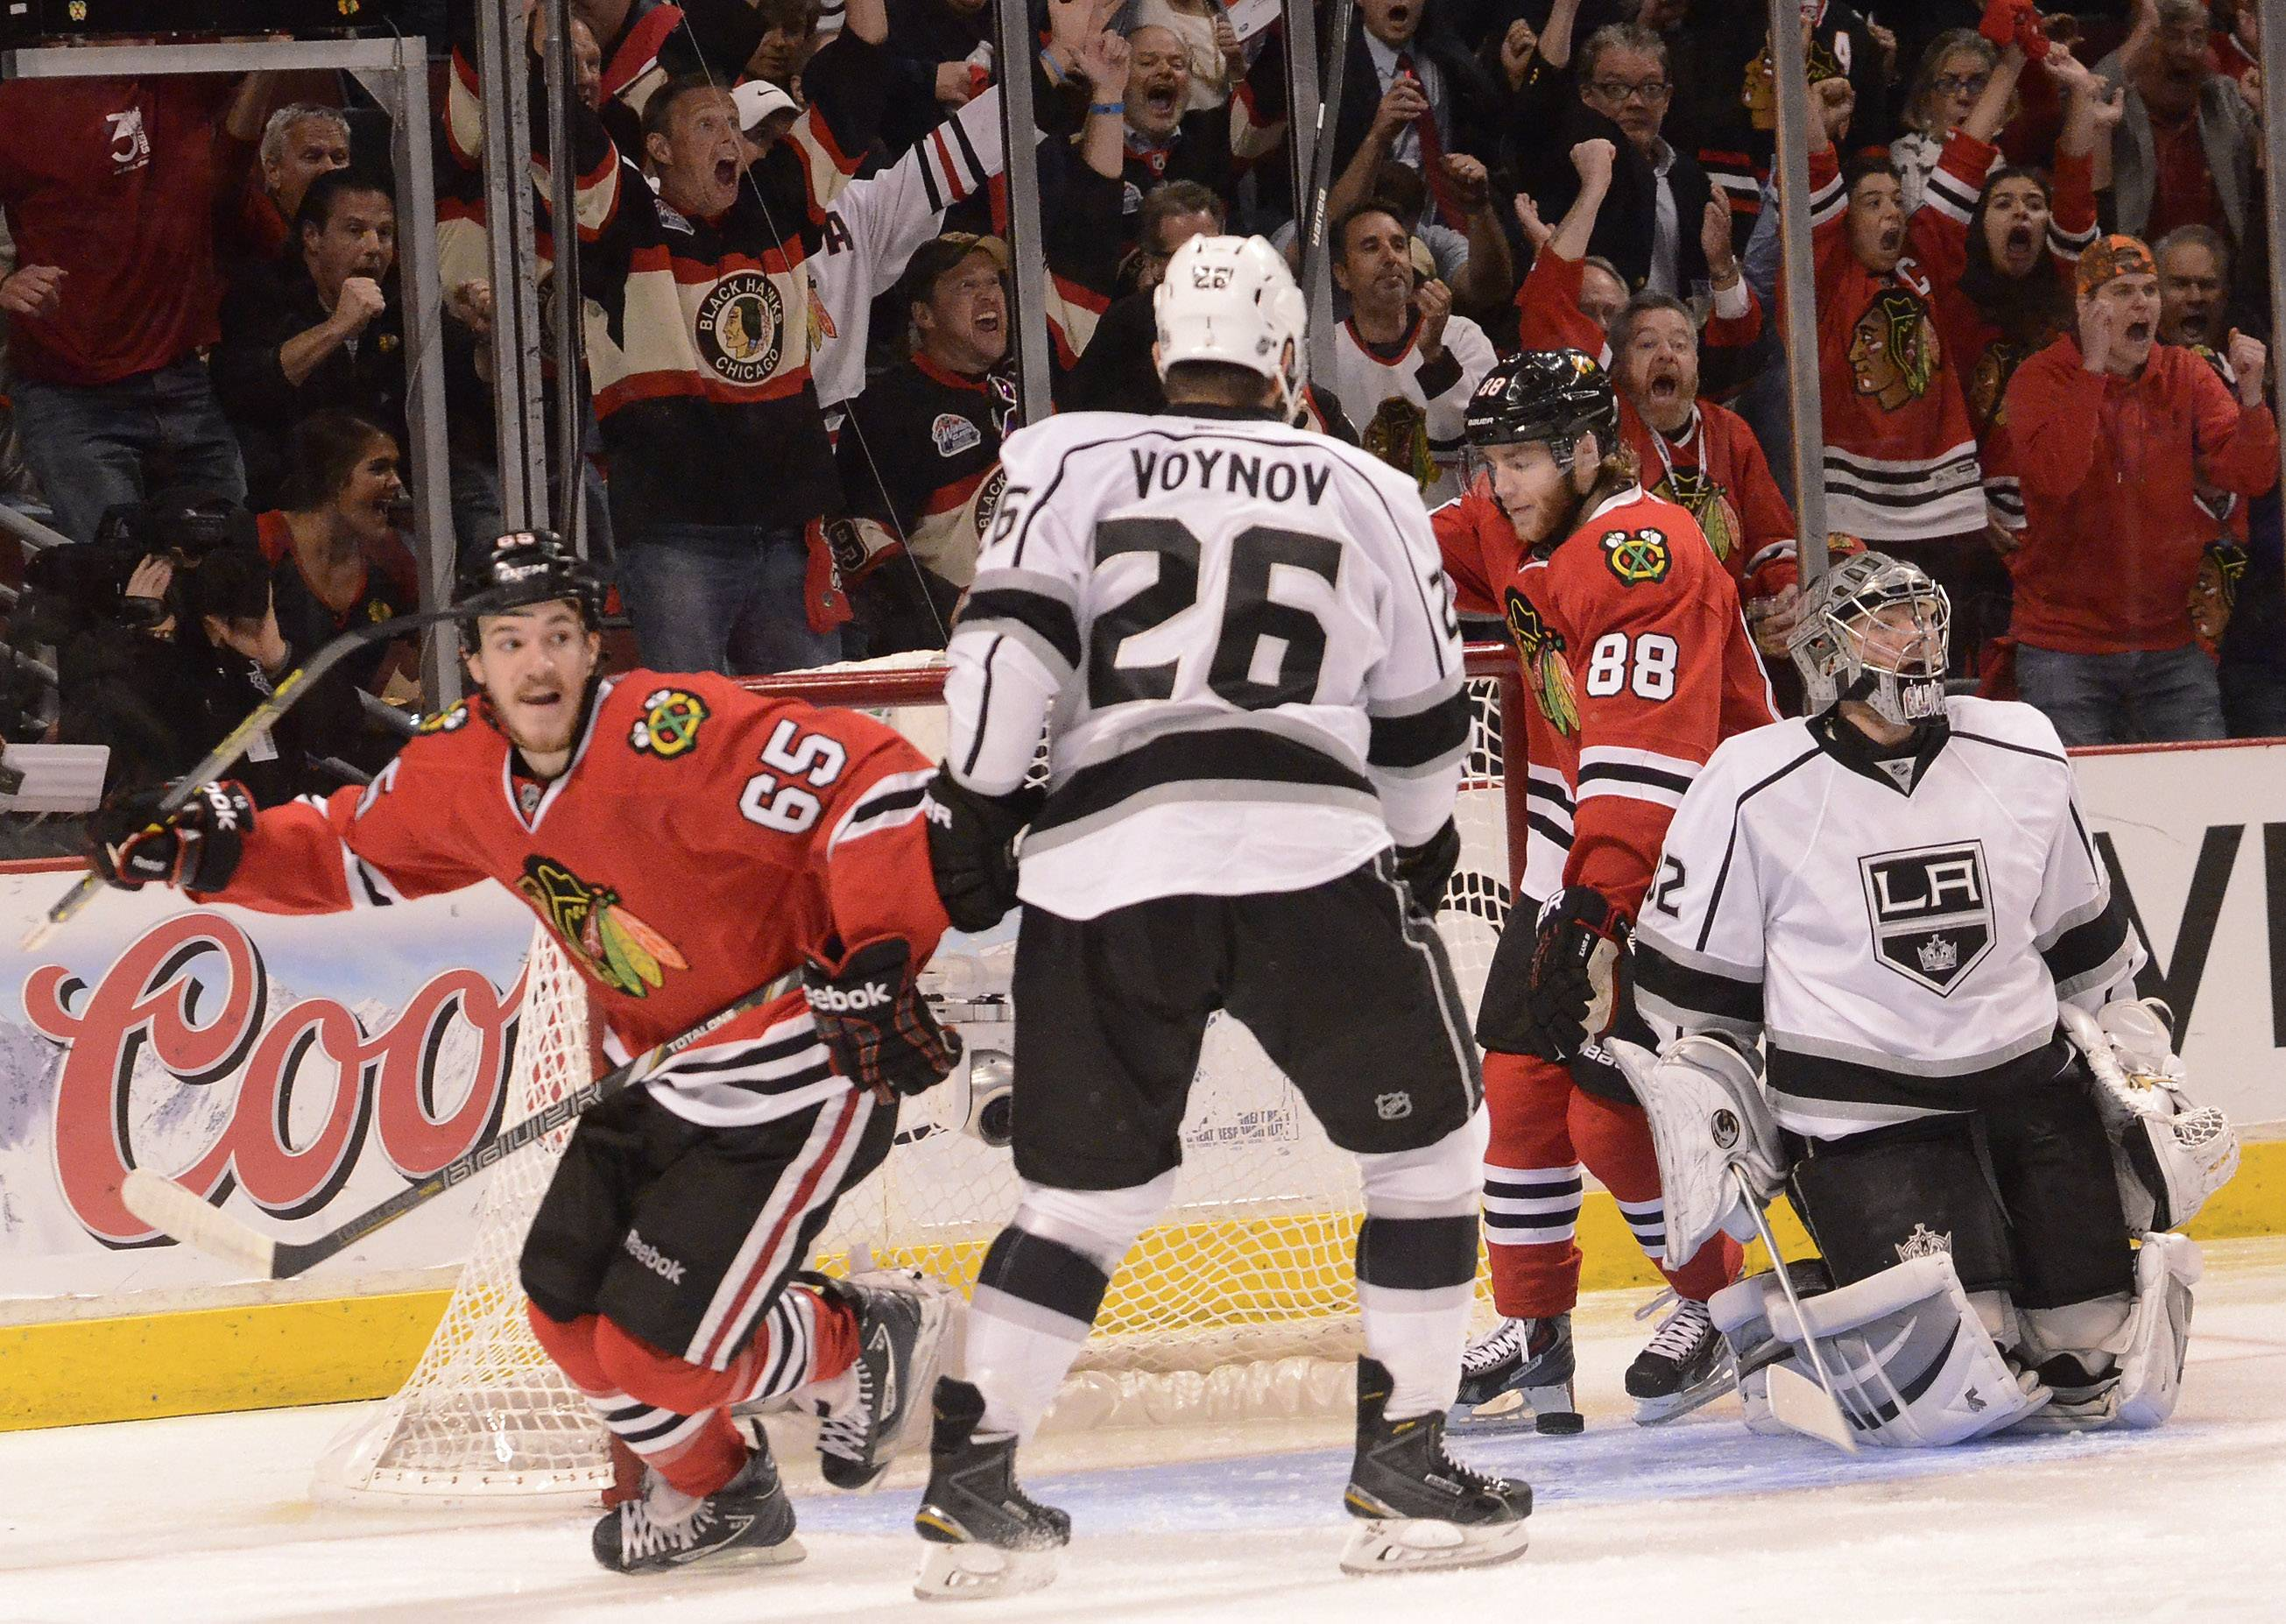 Chicago Blackhawks center Andrew Shaw and Chicago Blackhawks right wing Patrick Kane react to Chicago Blackhawks defenseman Brent Seabrook's first-period goal.